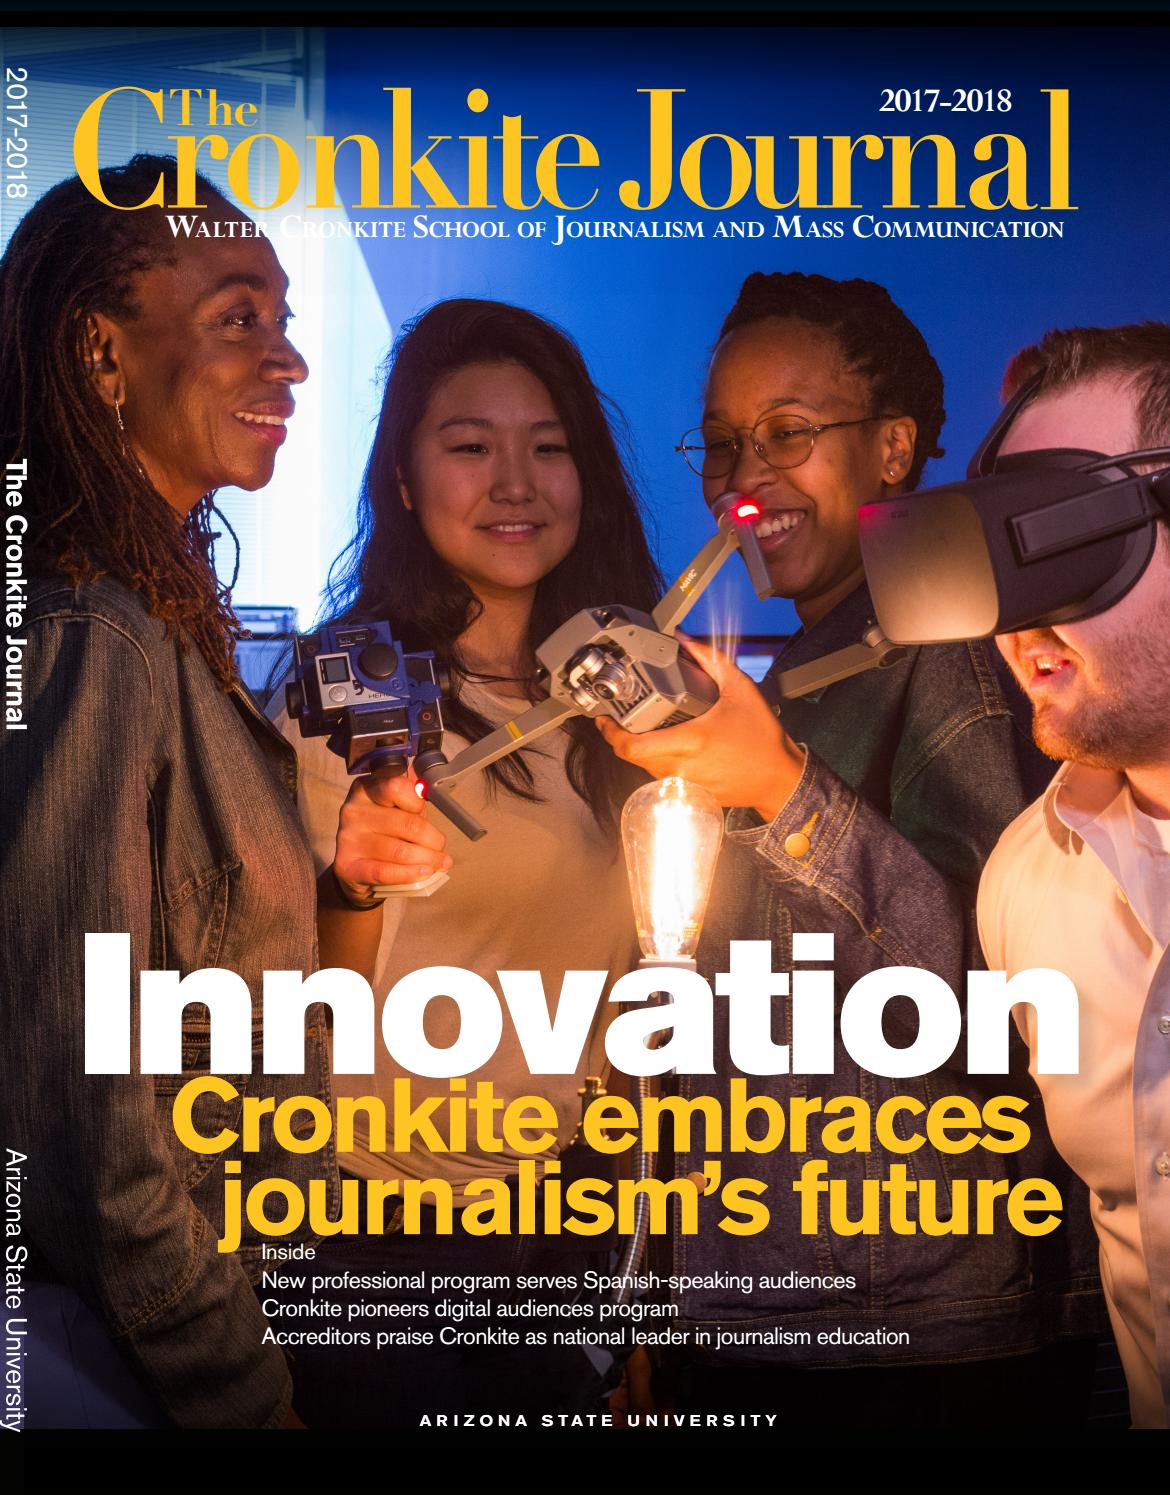 Journal17 18 by Walter Cronkite School of Journalism and Mass